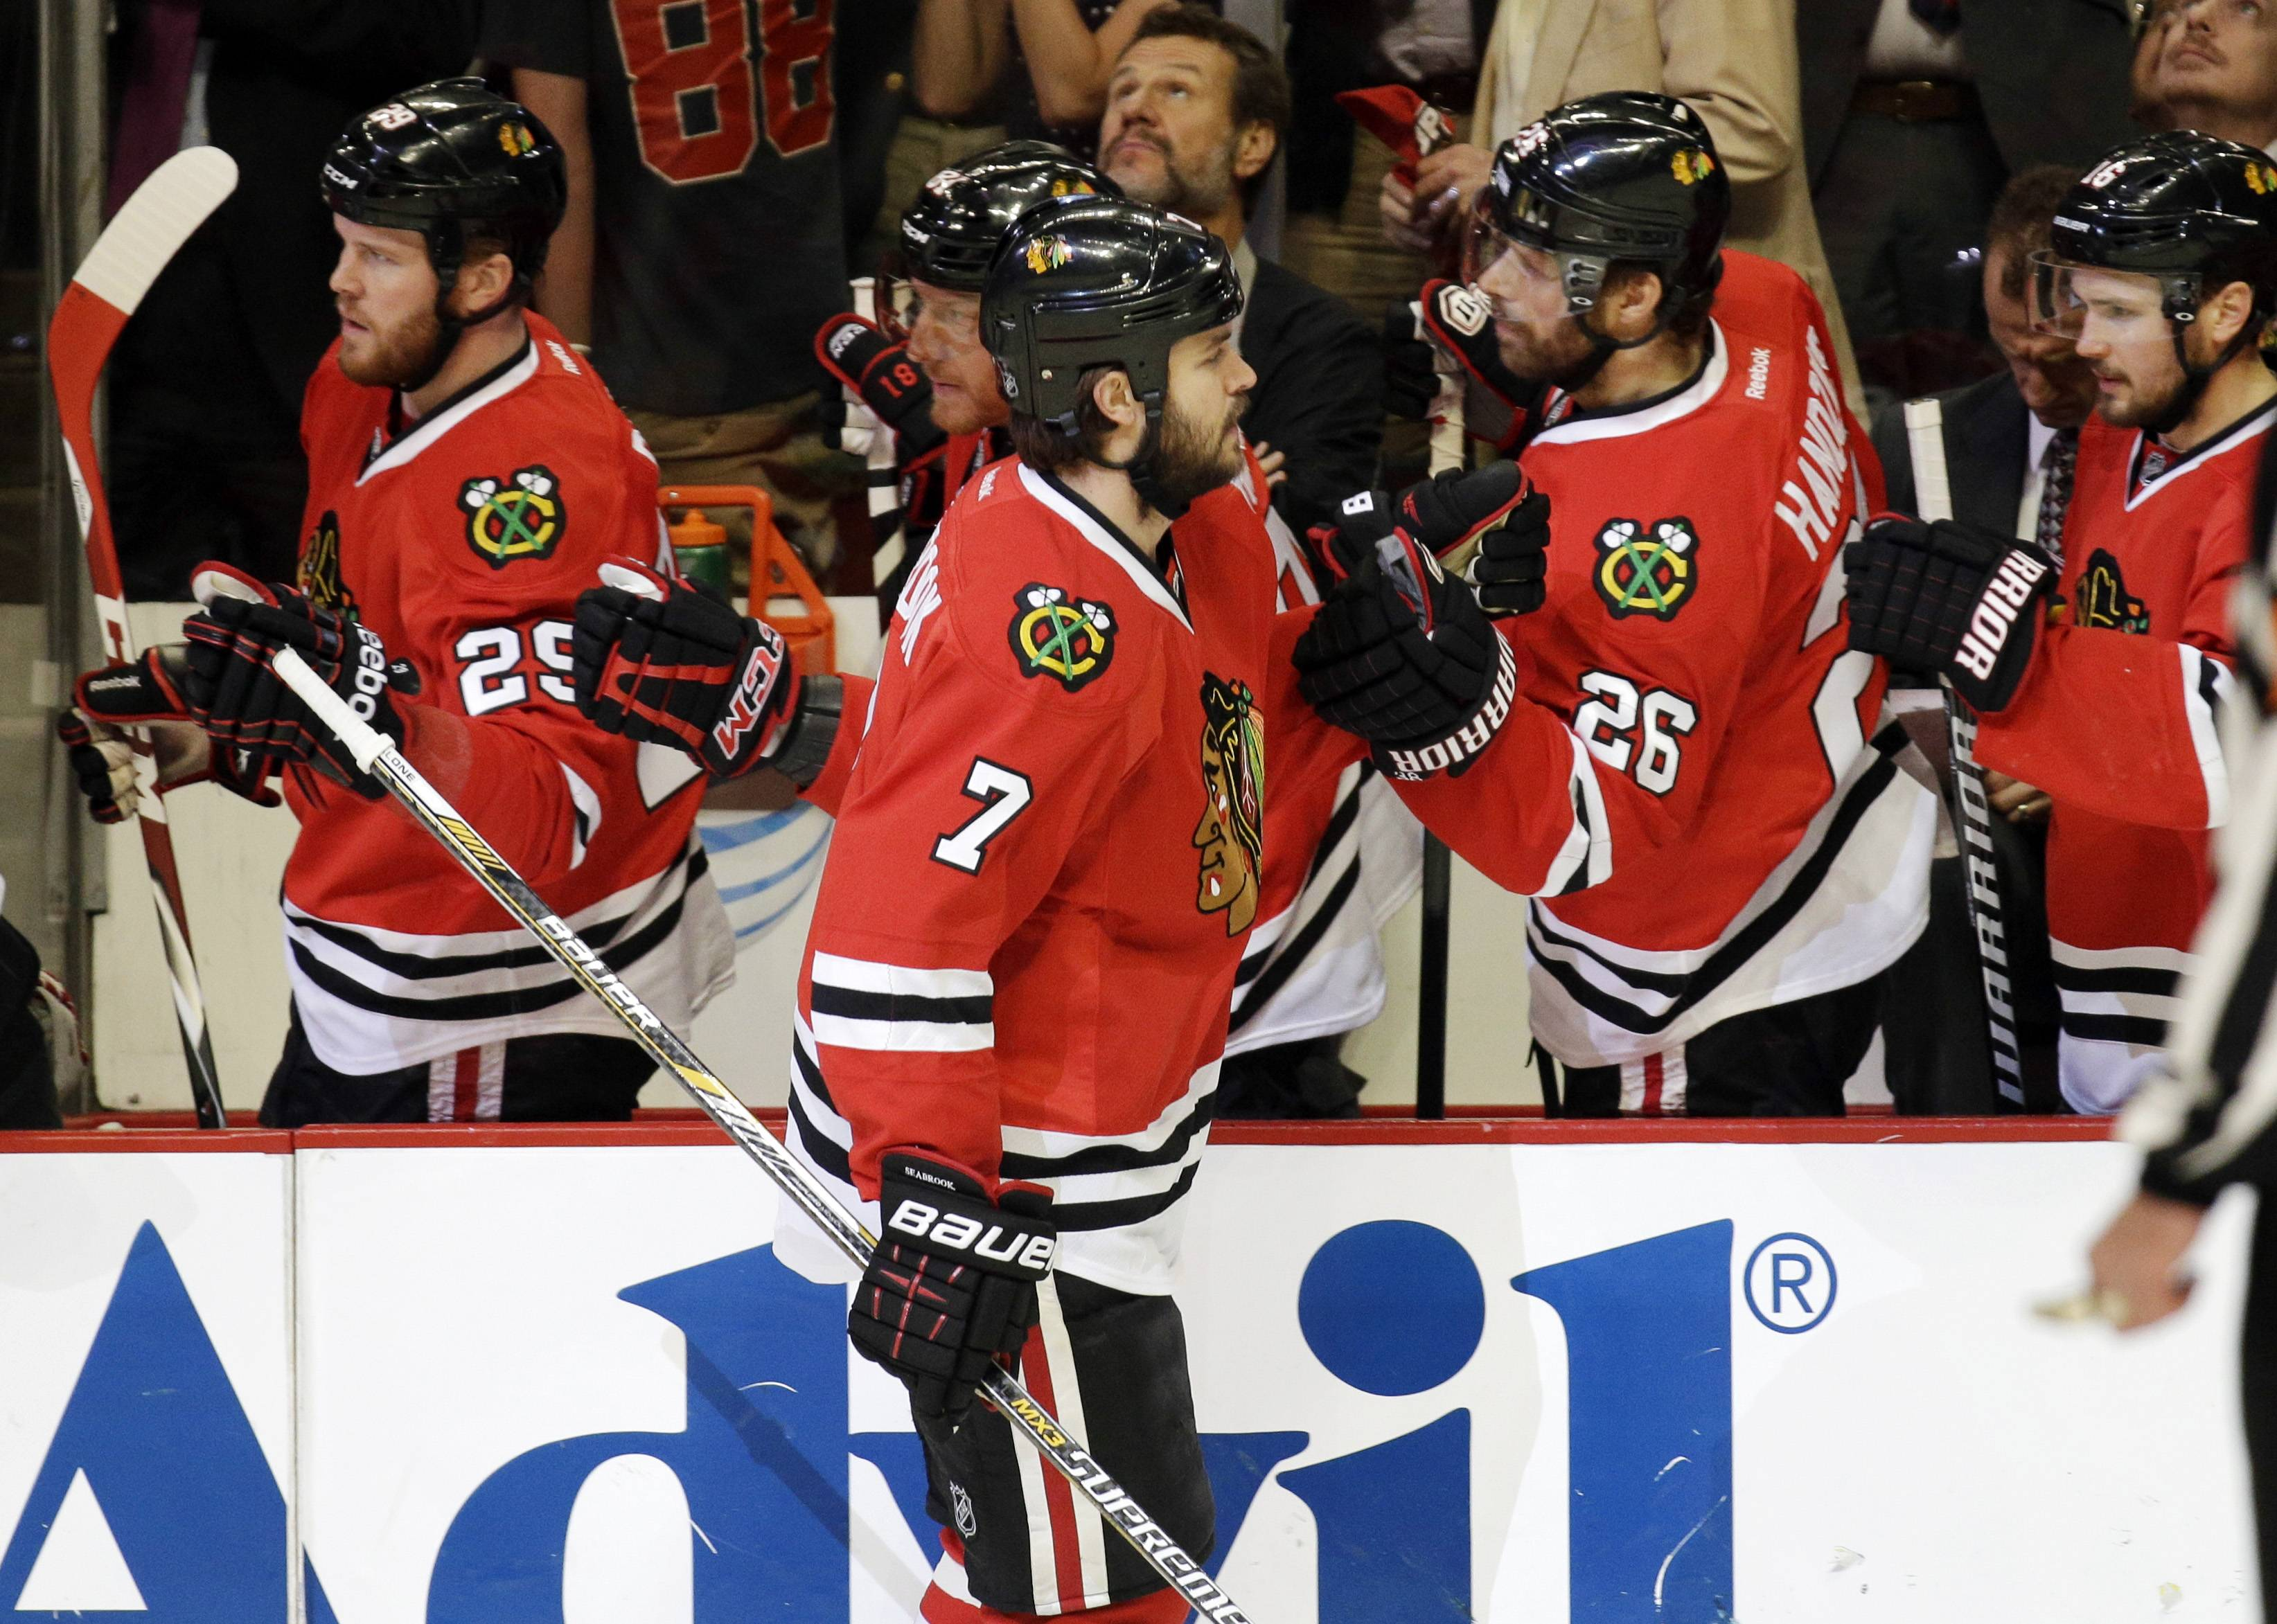 Chicago Blackhawks defenseman Brent Seabrook celebrates a goal with his teammates during the first period in Game 5 of the Western Conference finals against the Los Angeles Kings in the NHL hockey Stanley Cup playoffs Wednesday, May 28, 2014, in Chicago. (AP Photo/Nam Y. Huh)